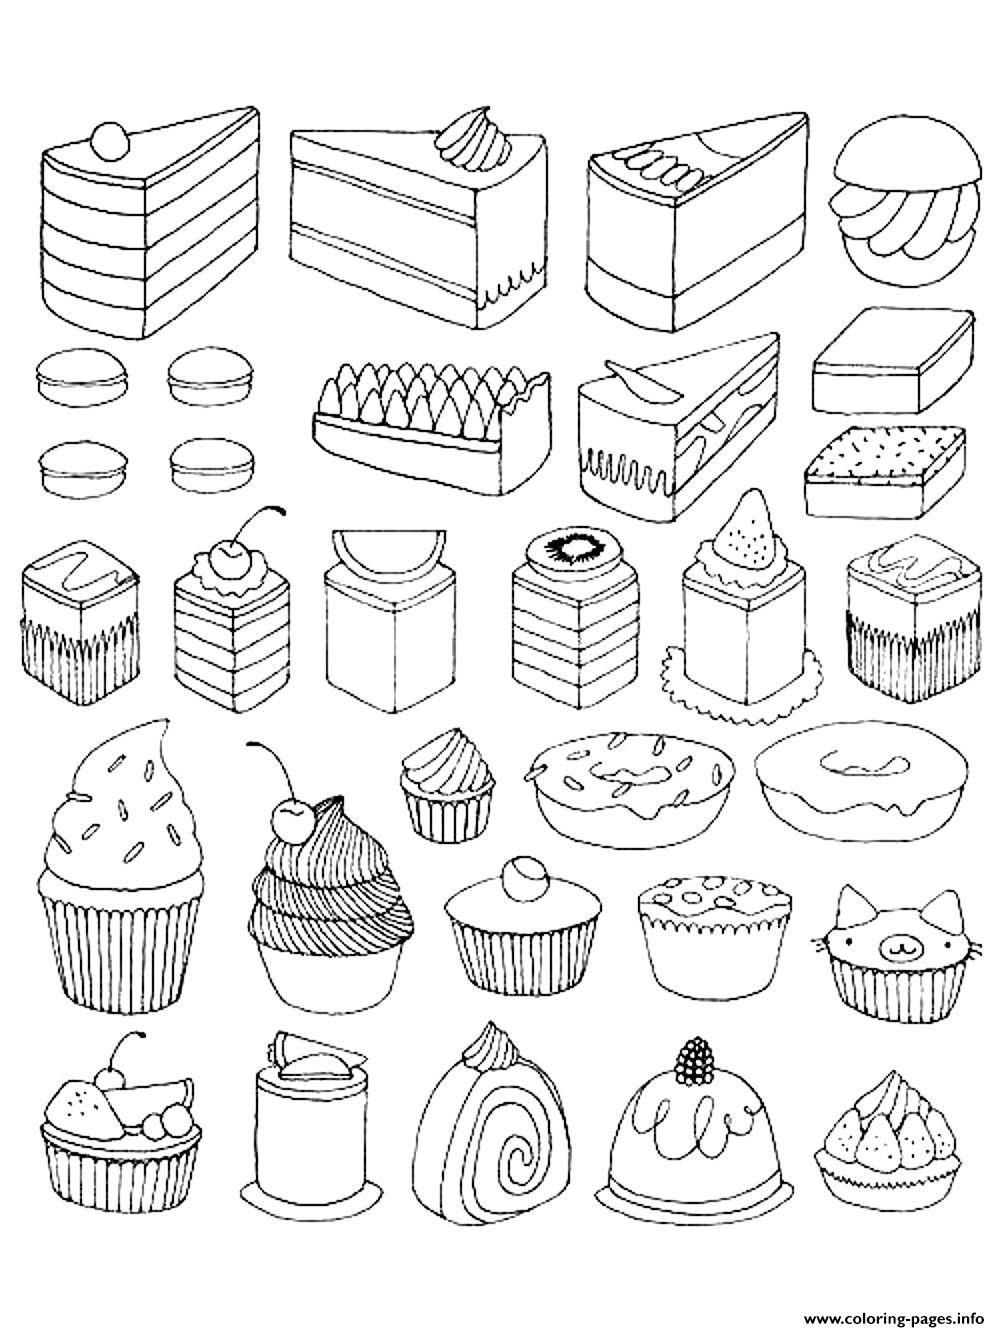 Print coloring adult cupcakes and little cakes coloring